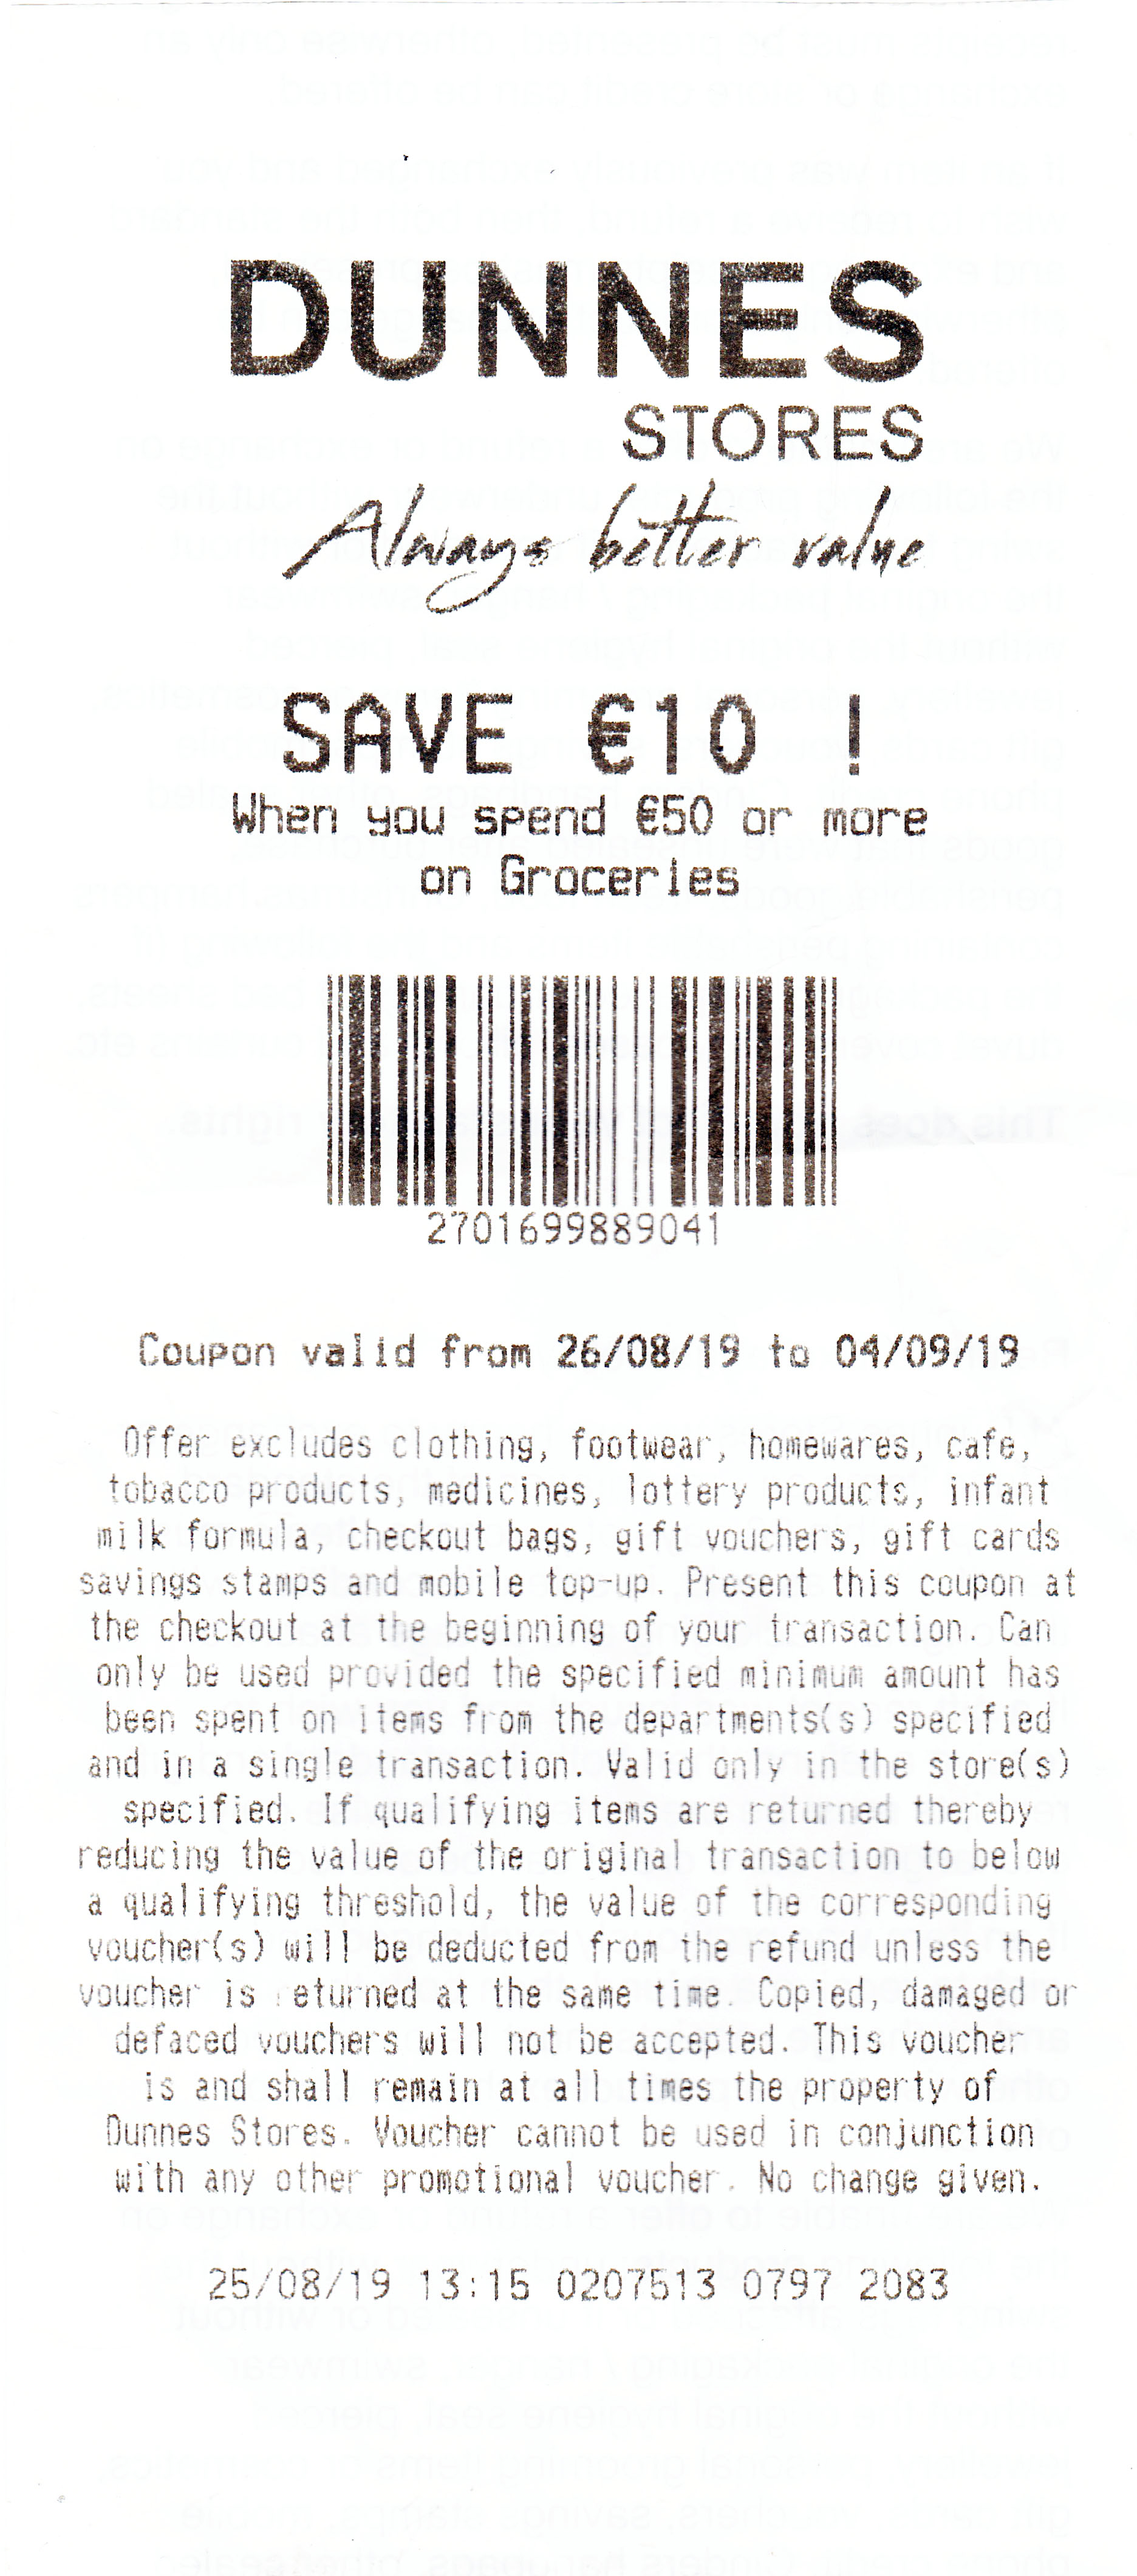 dunnes-stores-save-10-when-spending-50